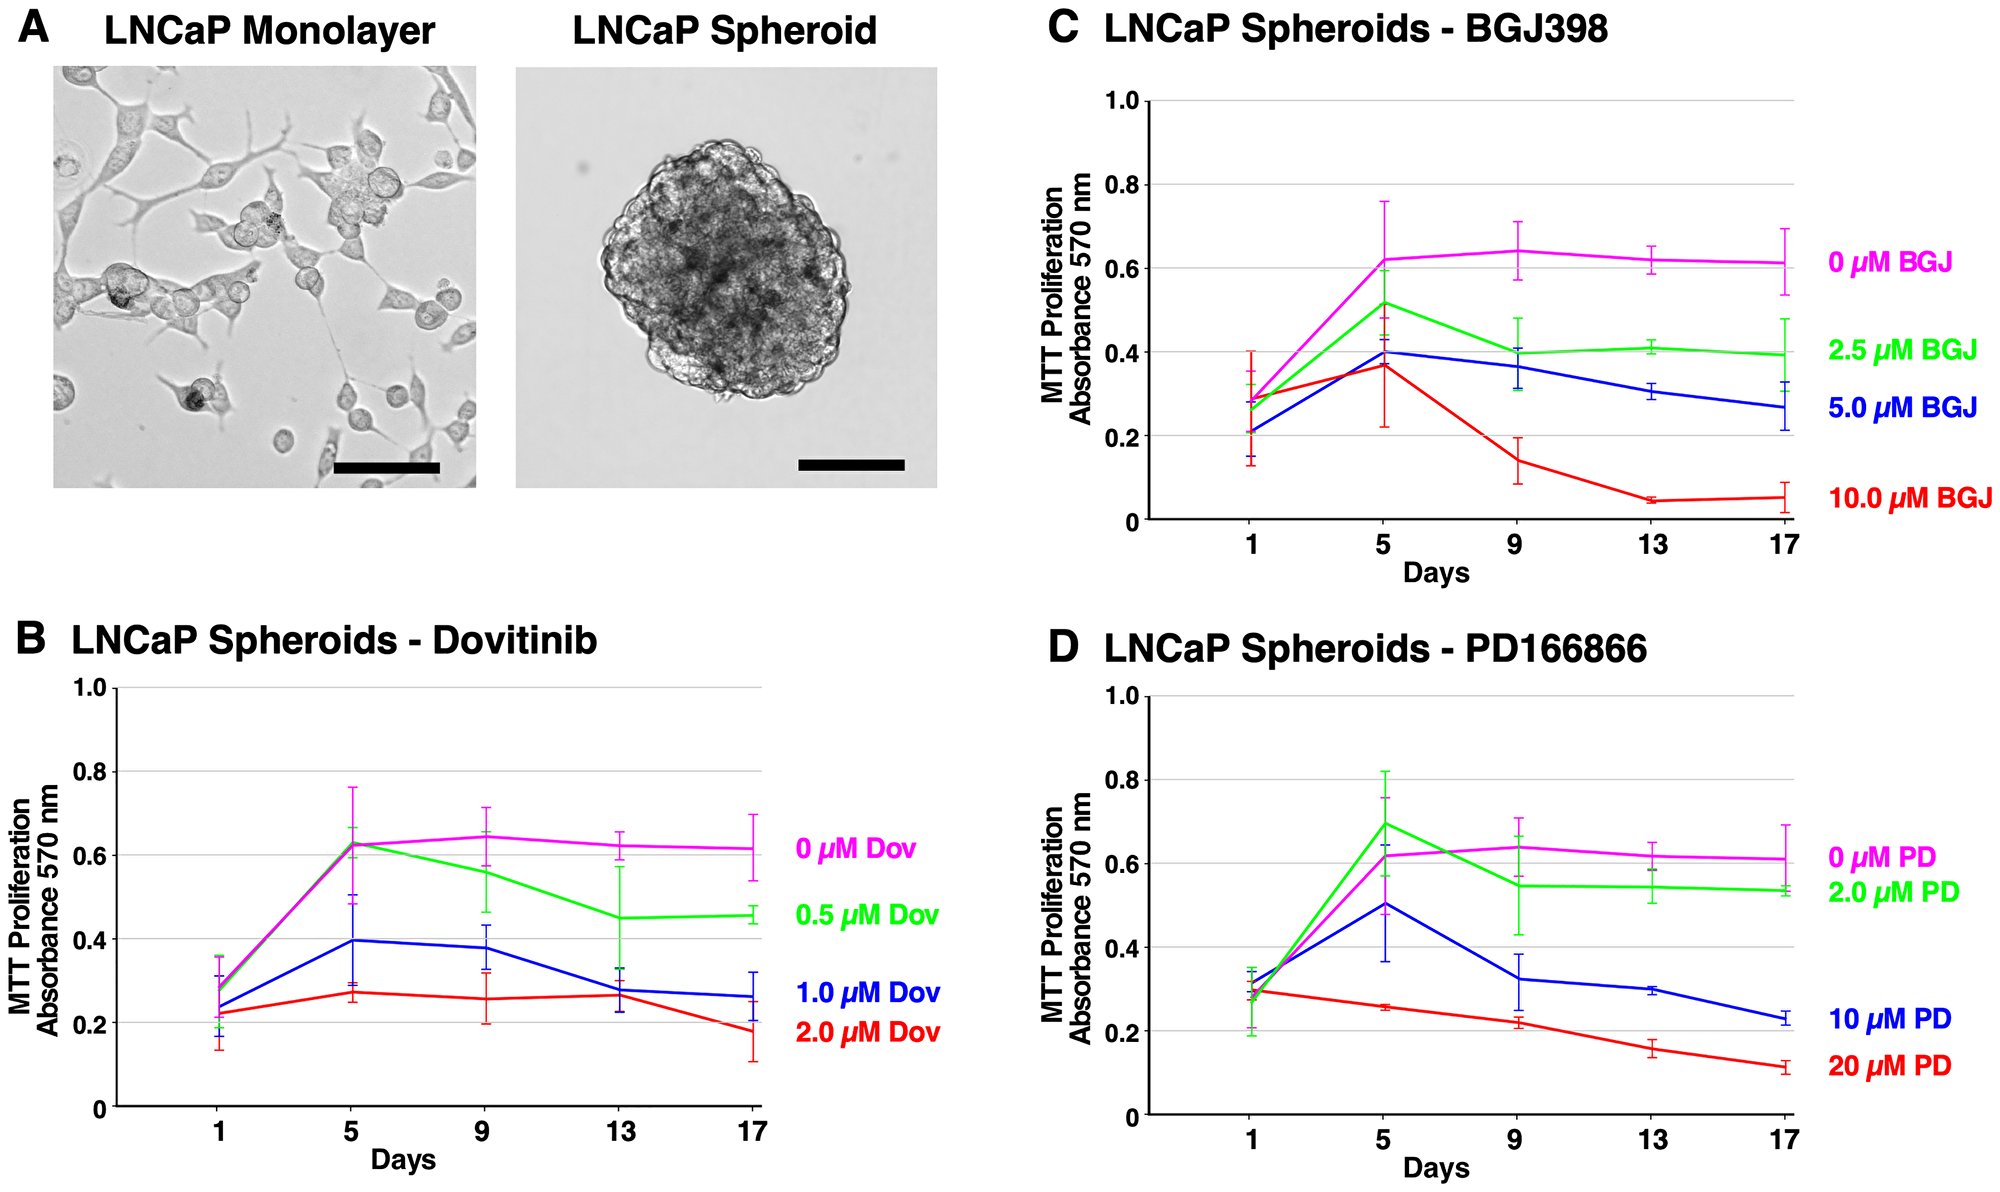 Formation of LNCaP spheroids and inhibition of survival and growth via TKI treatment.